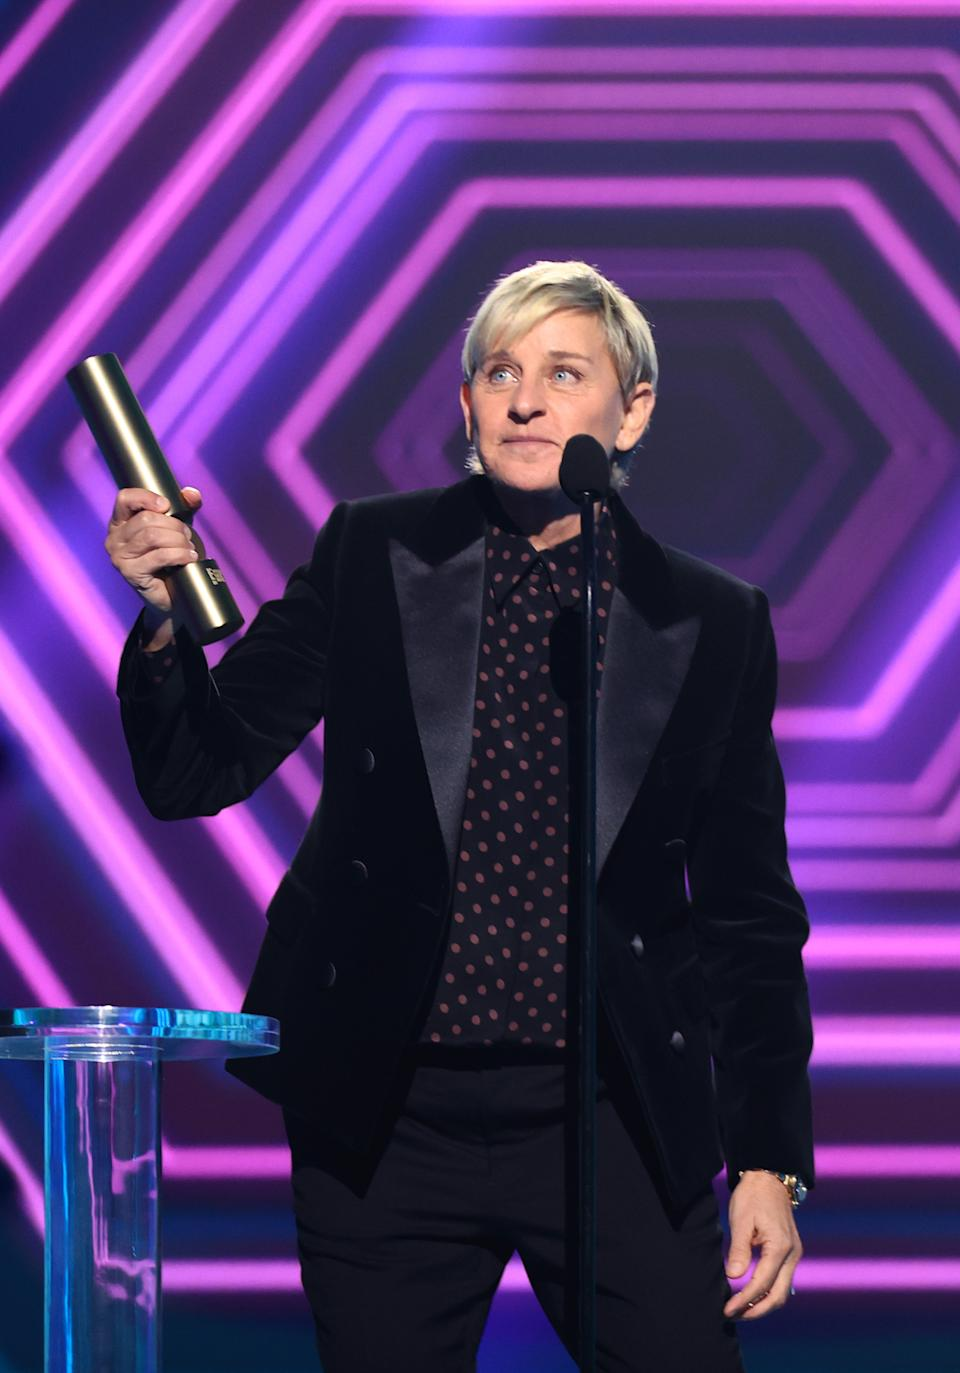 Ellen DeGeneres accepts the award for The Daytime Talk Show of 2020 onstage for the 2020 E! People's Choice Awards held at the Barker Hangar in Santa Monica, California and on broadcast on Sunday, November 15, 2020.